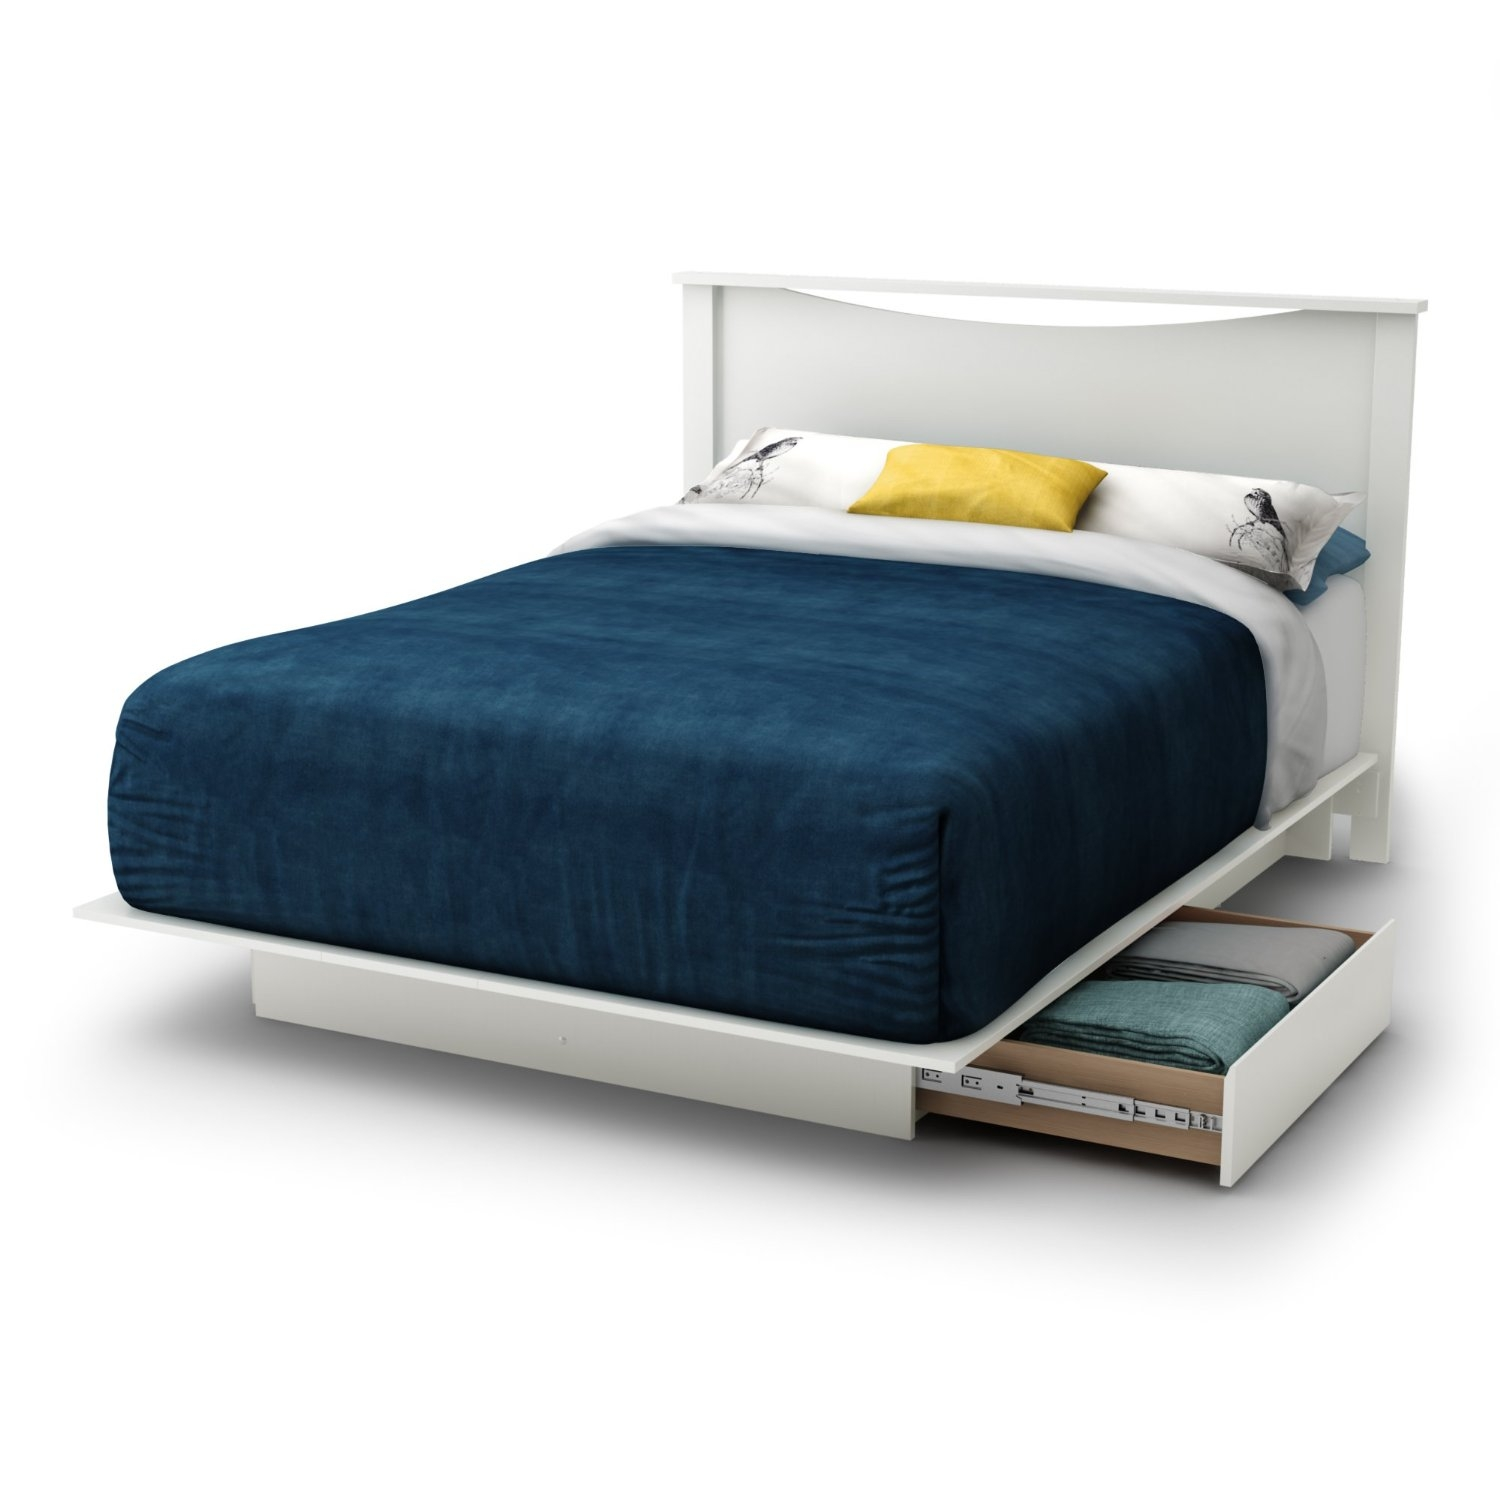 full size white modern platform bed frame with  storage drawers  - retail price